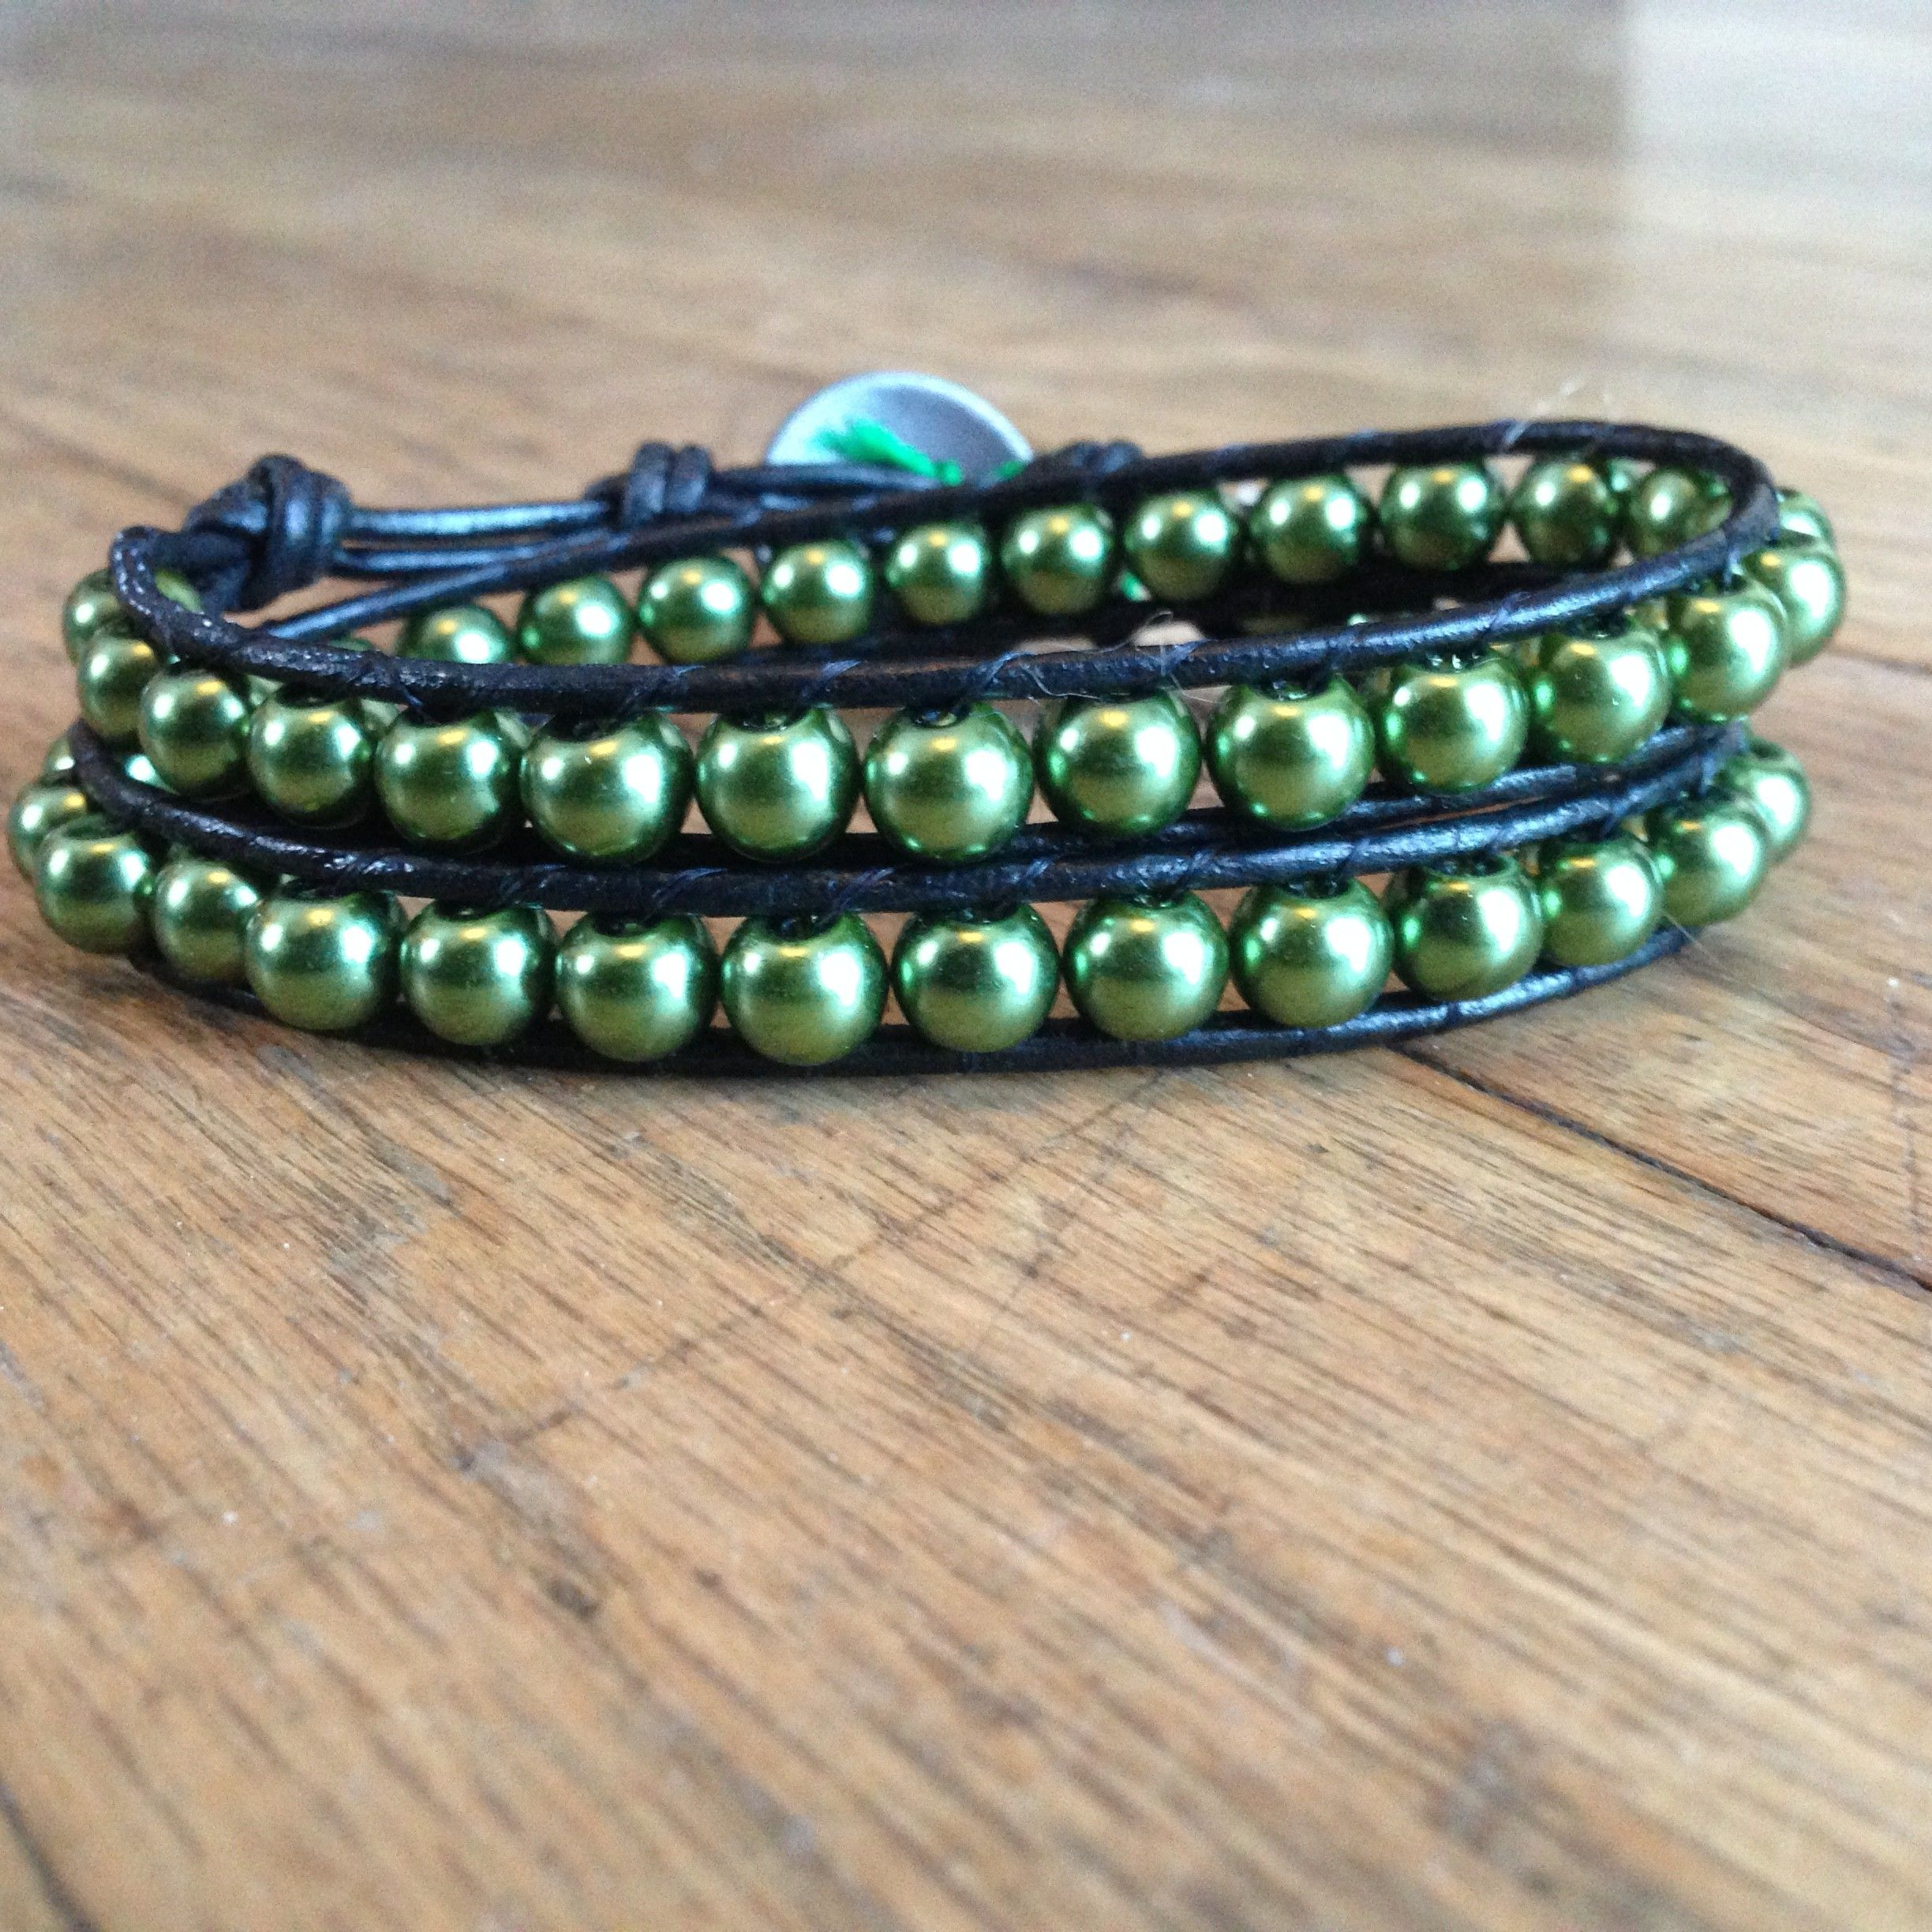 Anahata Heart Chakra Balancing Leather Wrap Bracelet With Glass Pearls  by Lexirina Jewelry